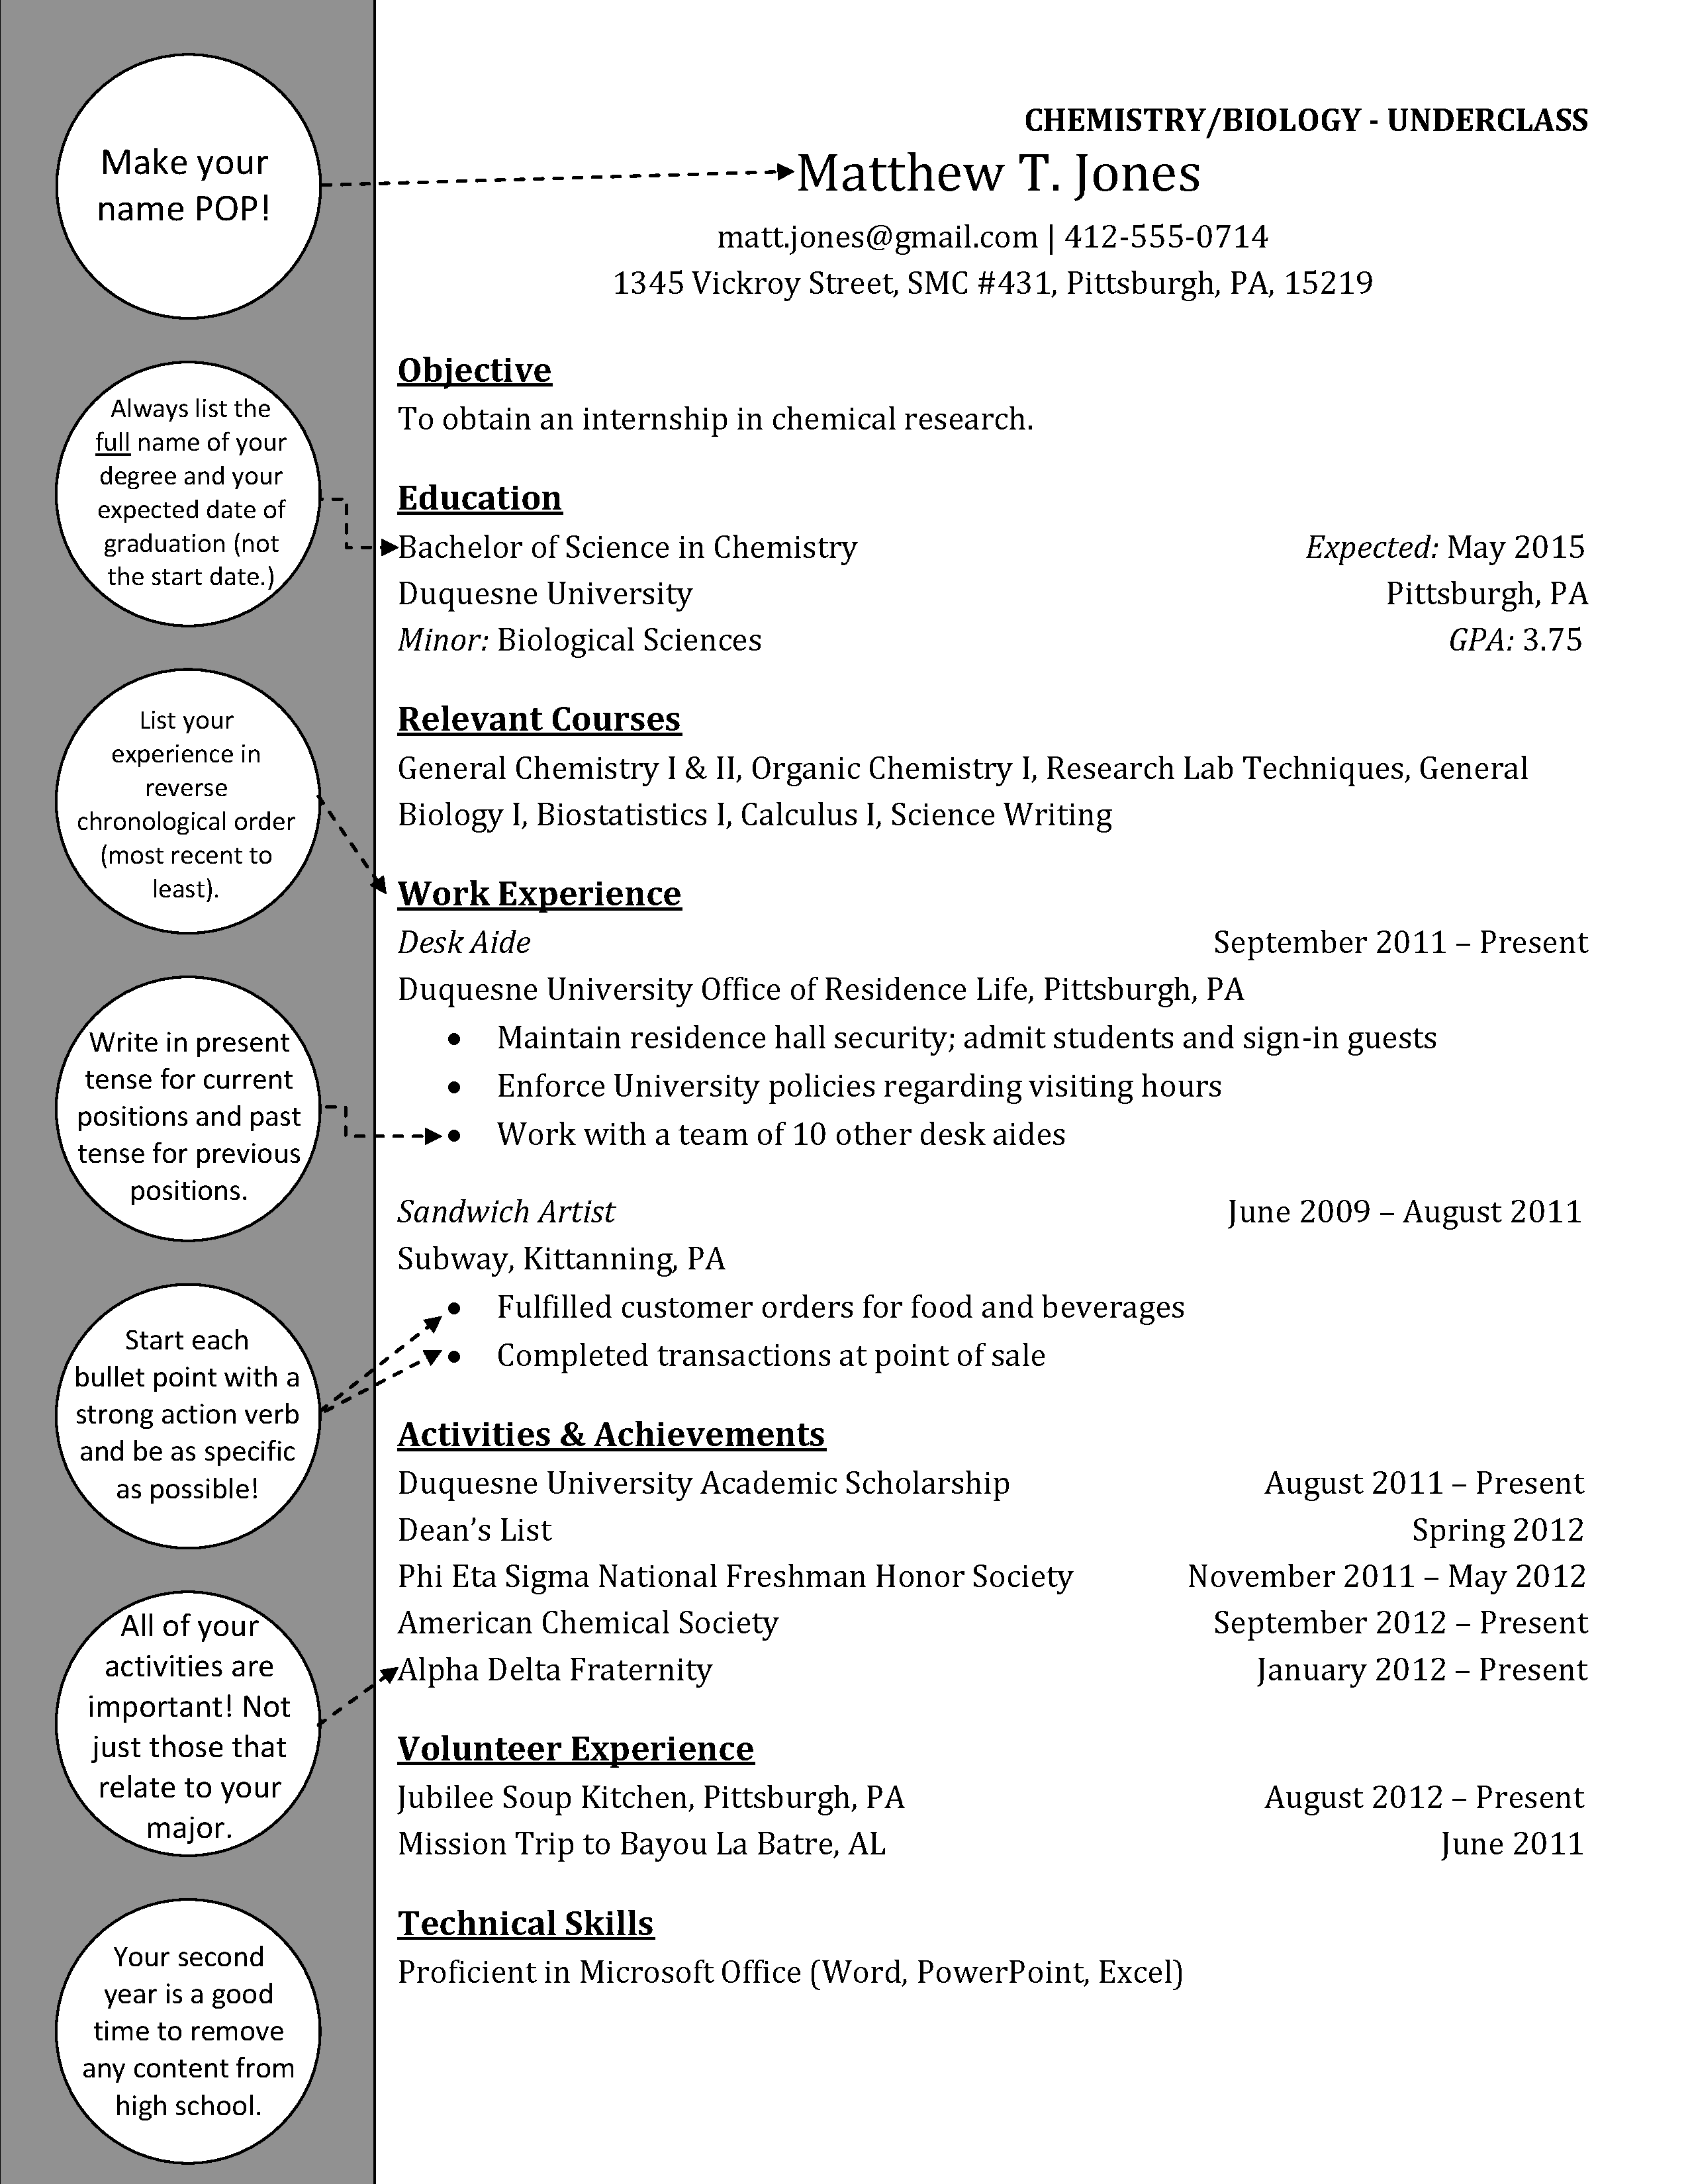 Chemistry Underclass Resume Duquesne Resume Cover Letter